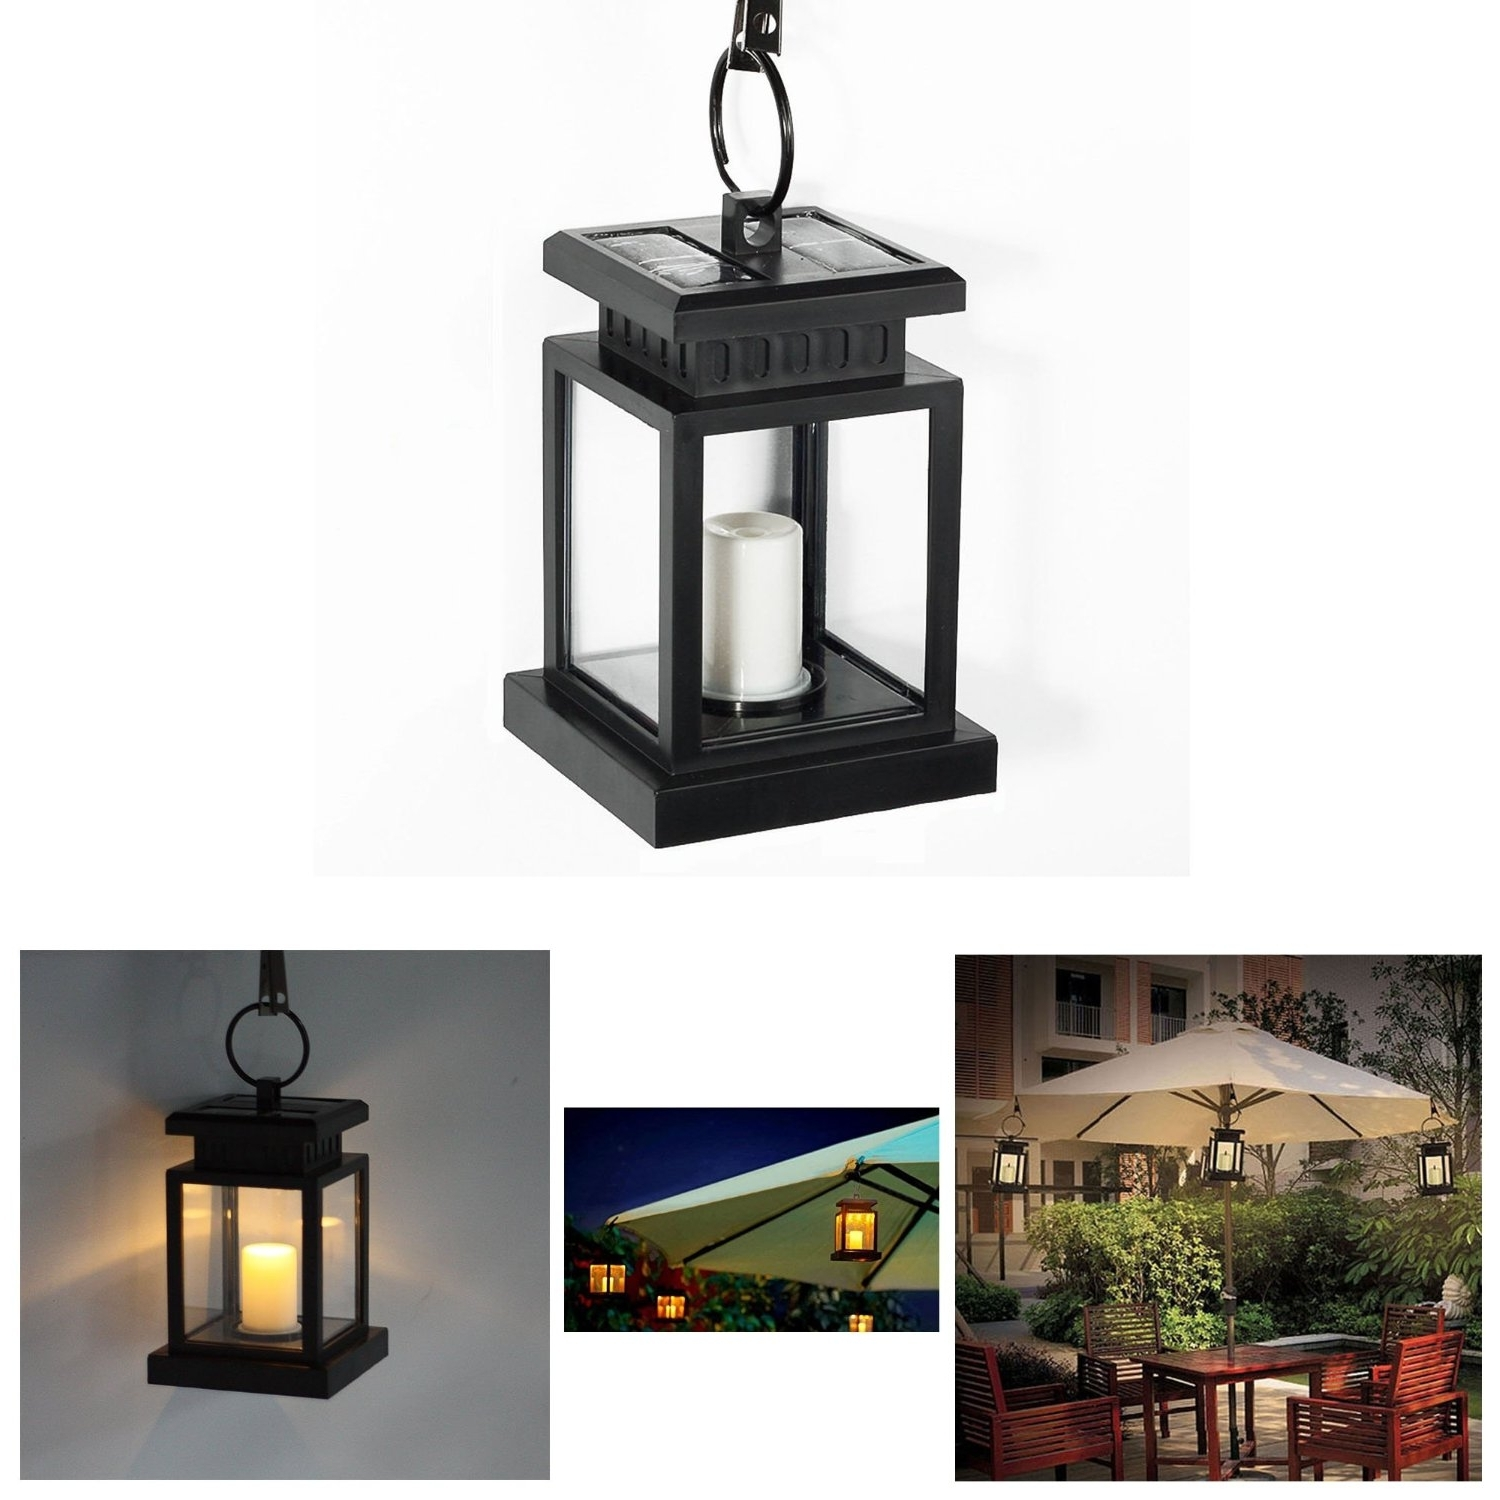 Widely Used Outdoor Hanging Lanterns For Candles Intended For Solar Powered Hanging Umbrella Lantern Candle Led Light With Clamp (View 19 of 20)